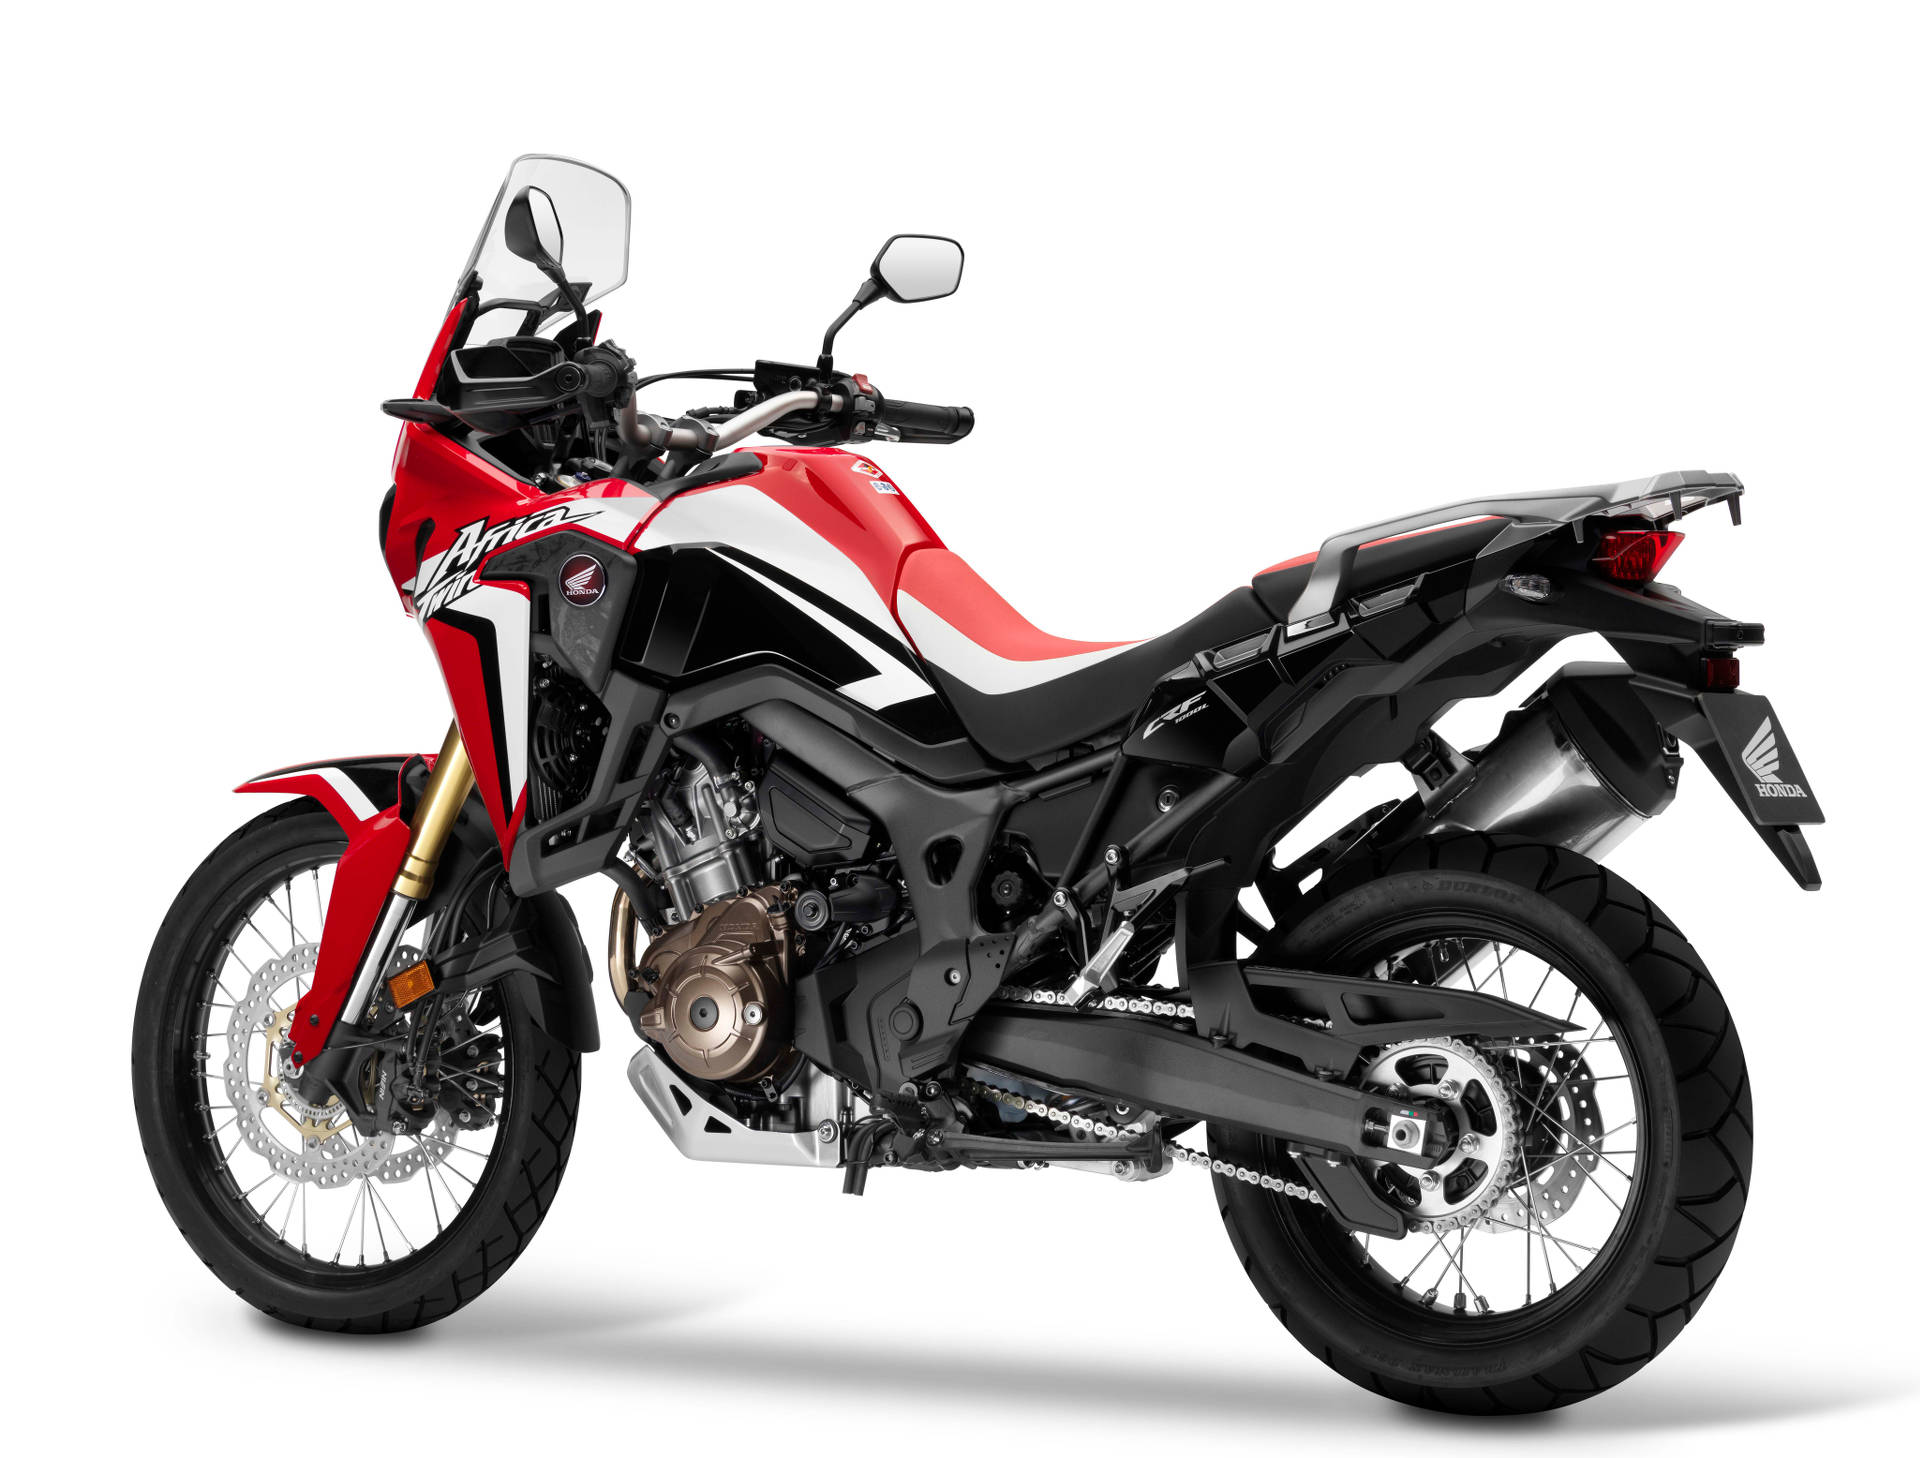 honda 2016 crf1000l africa twin full english language press release and specifications. Black Bedroom Furniture Sets. Home Design Ideas